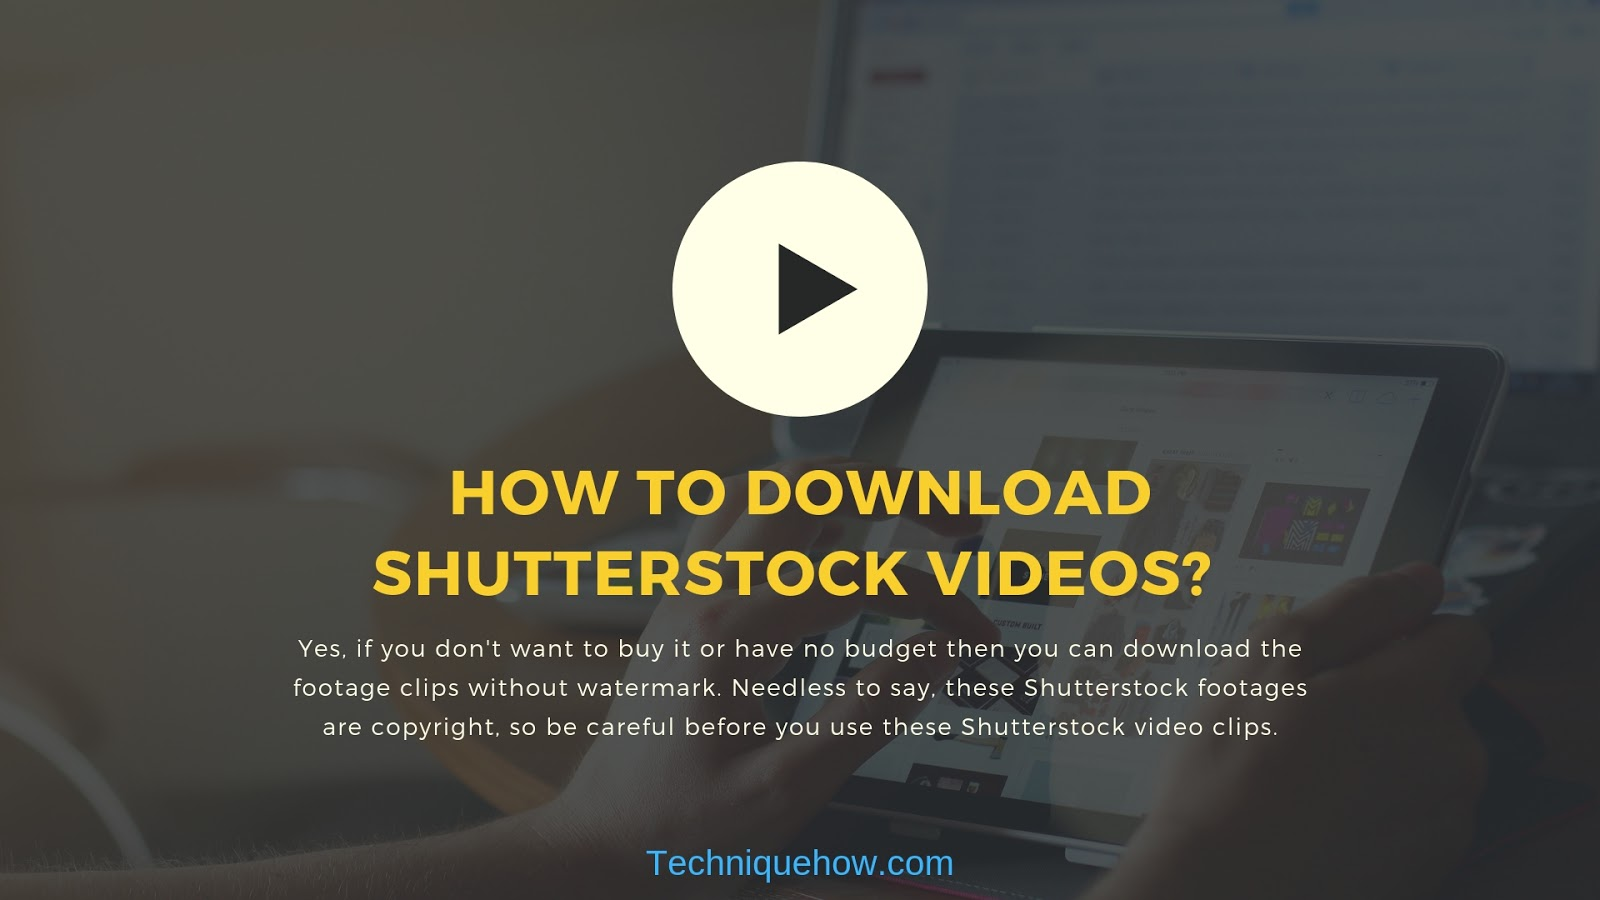 How to Download Shutterstock Footage for Free? - Working Method